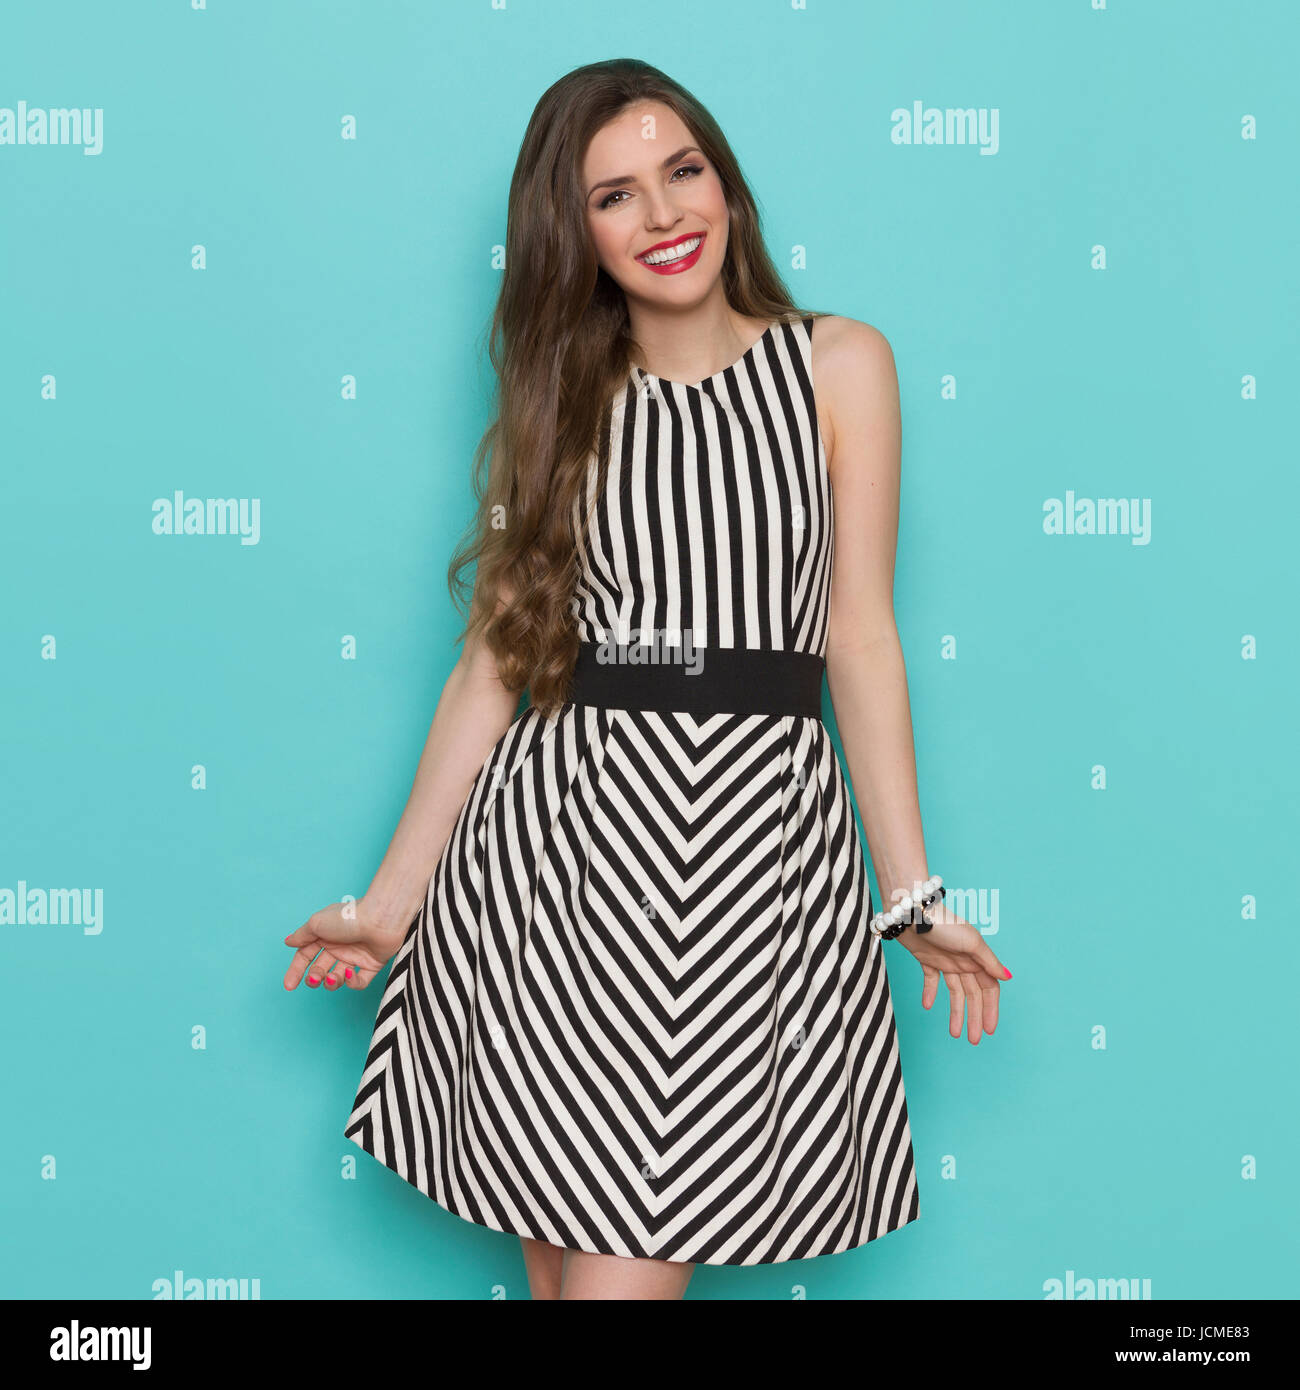 a7e19a4e56f Beautiful girl in black and white striped dress posing smiling and looking  at camera